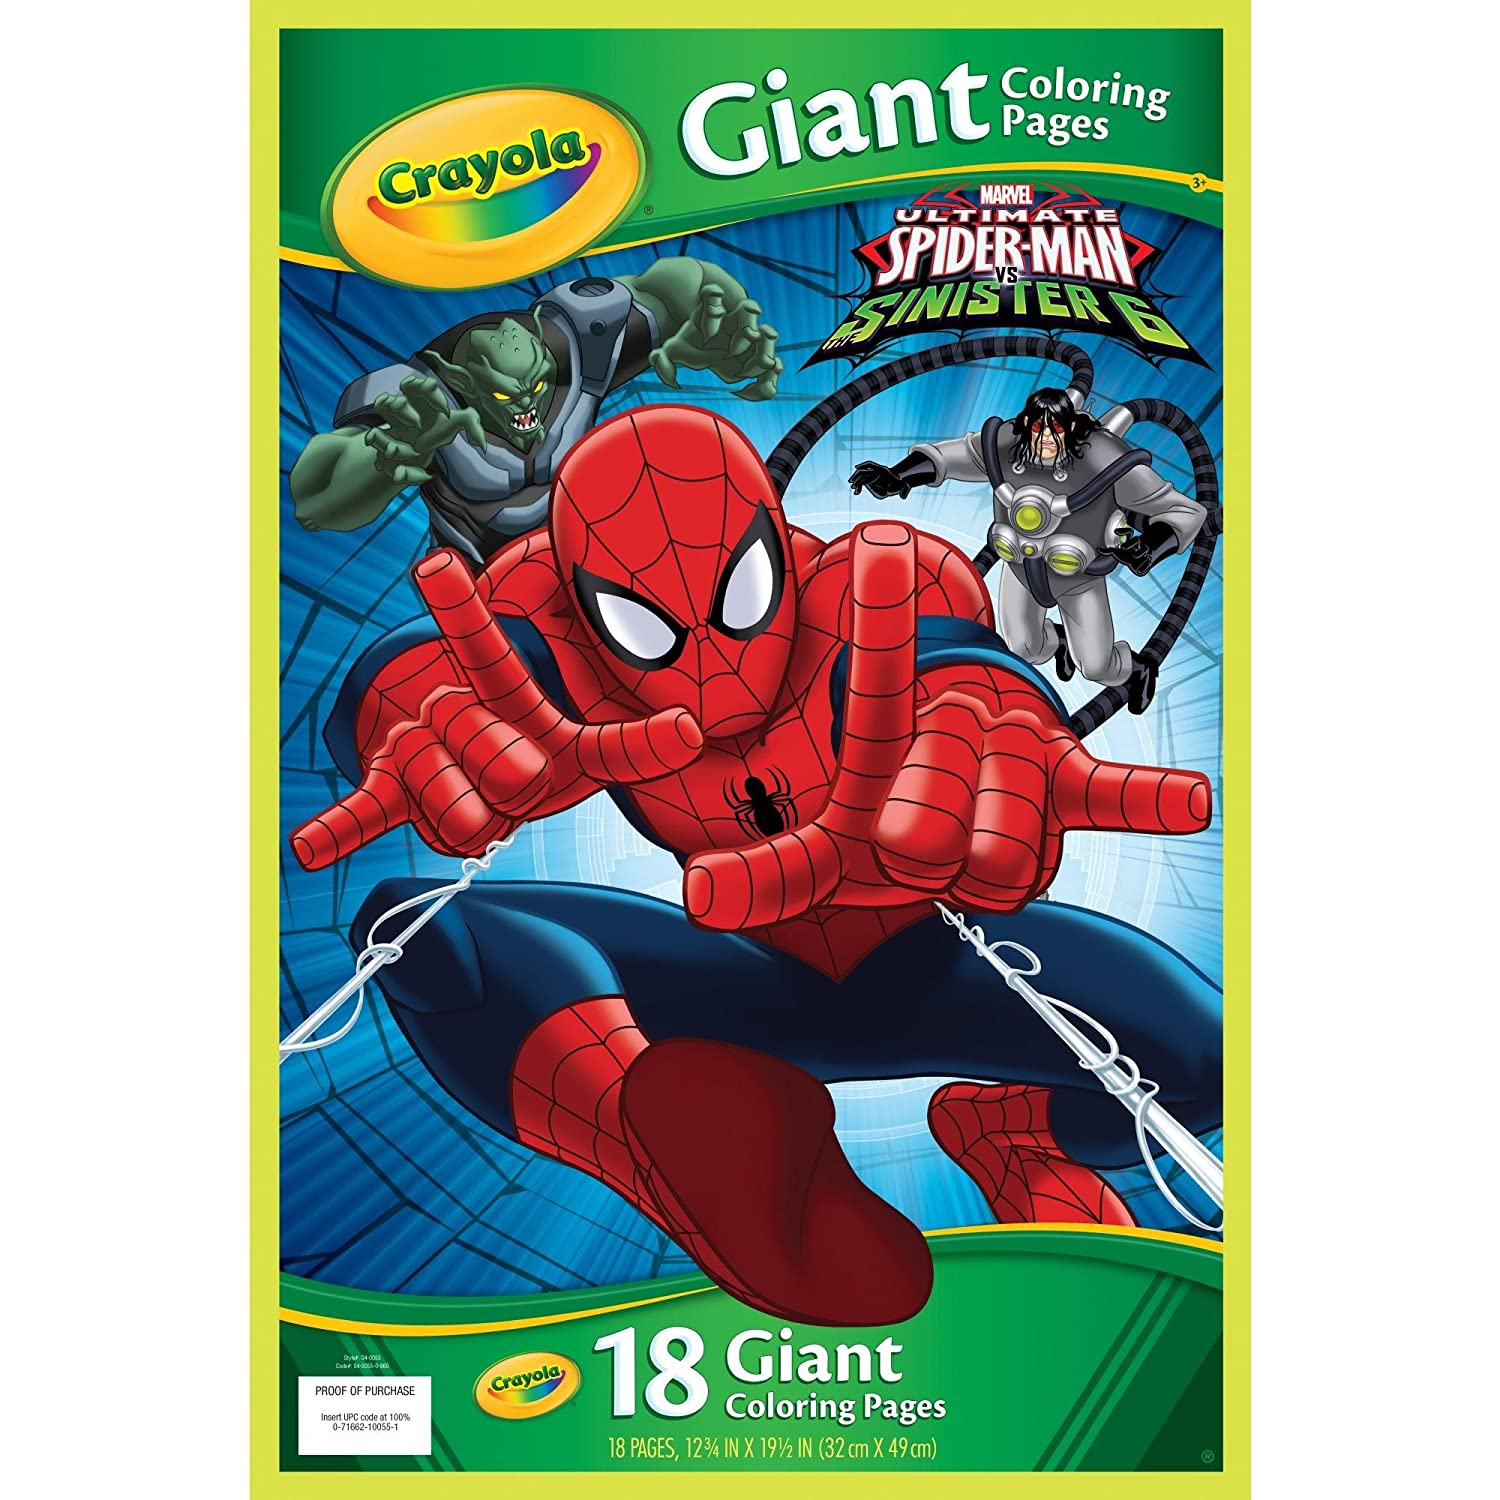 Crayola Marvel Spiderman Giant Coloring Pages: Amazon.co.uk: Kitchen ...